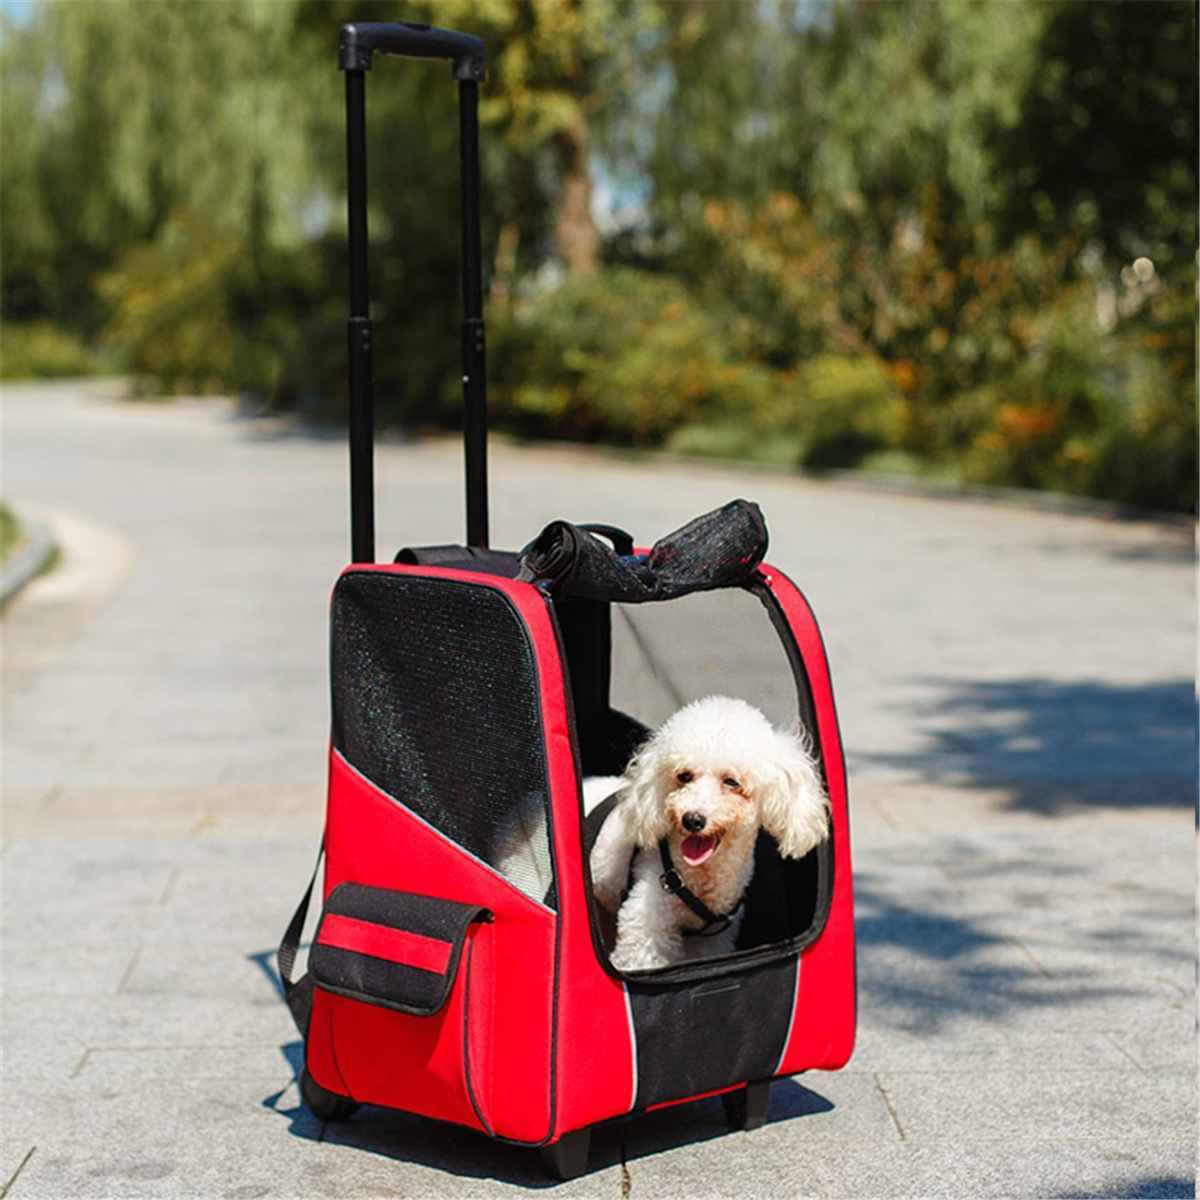 Dog Stroller Carrier Pet Travelling Dog Pet Knapsack Walking Shopping Trolley Four-wheeled Breathable Carry Cart Draw-bar Box